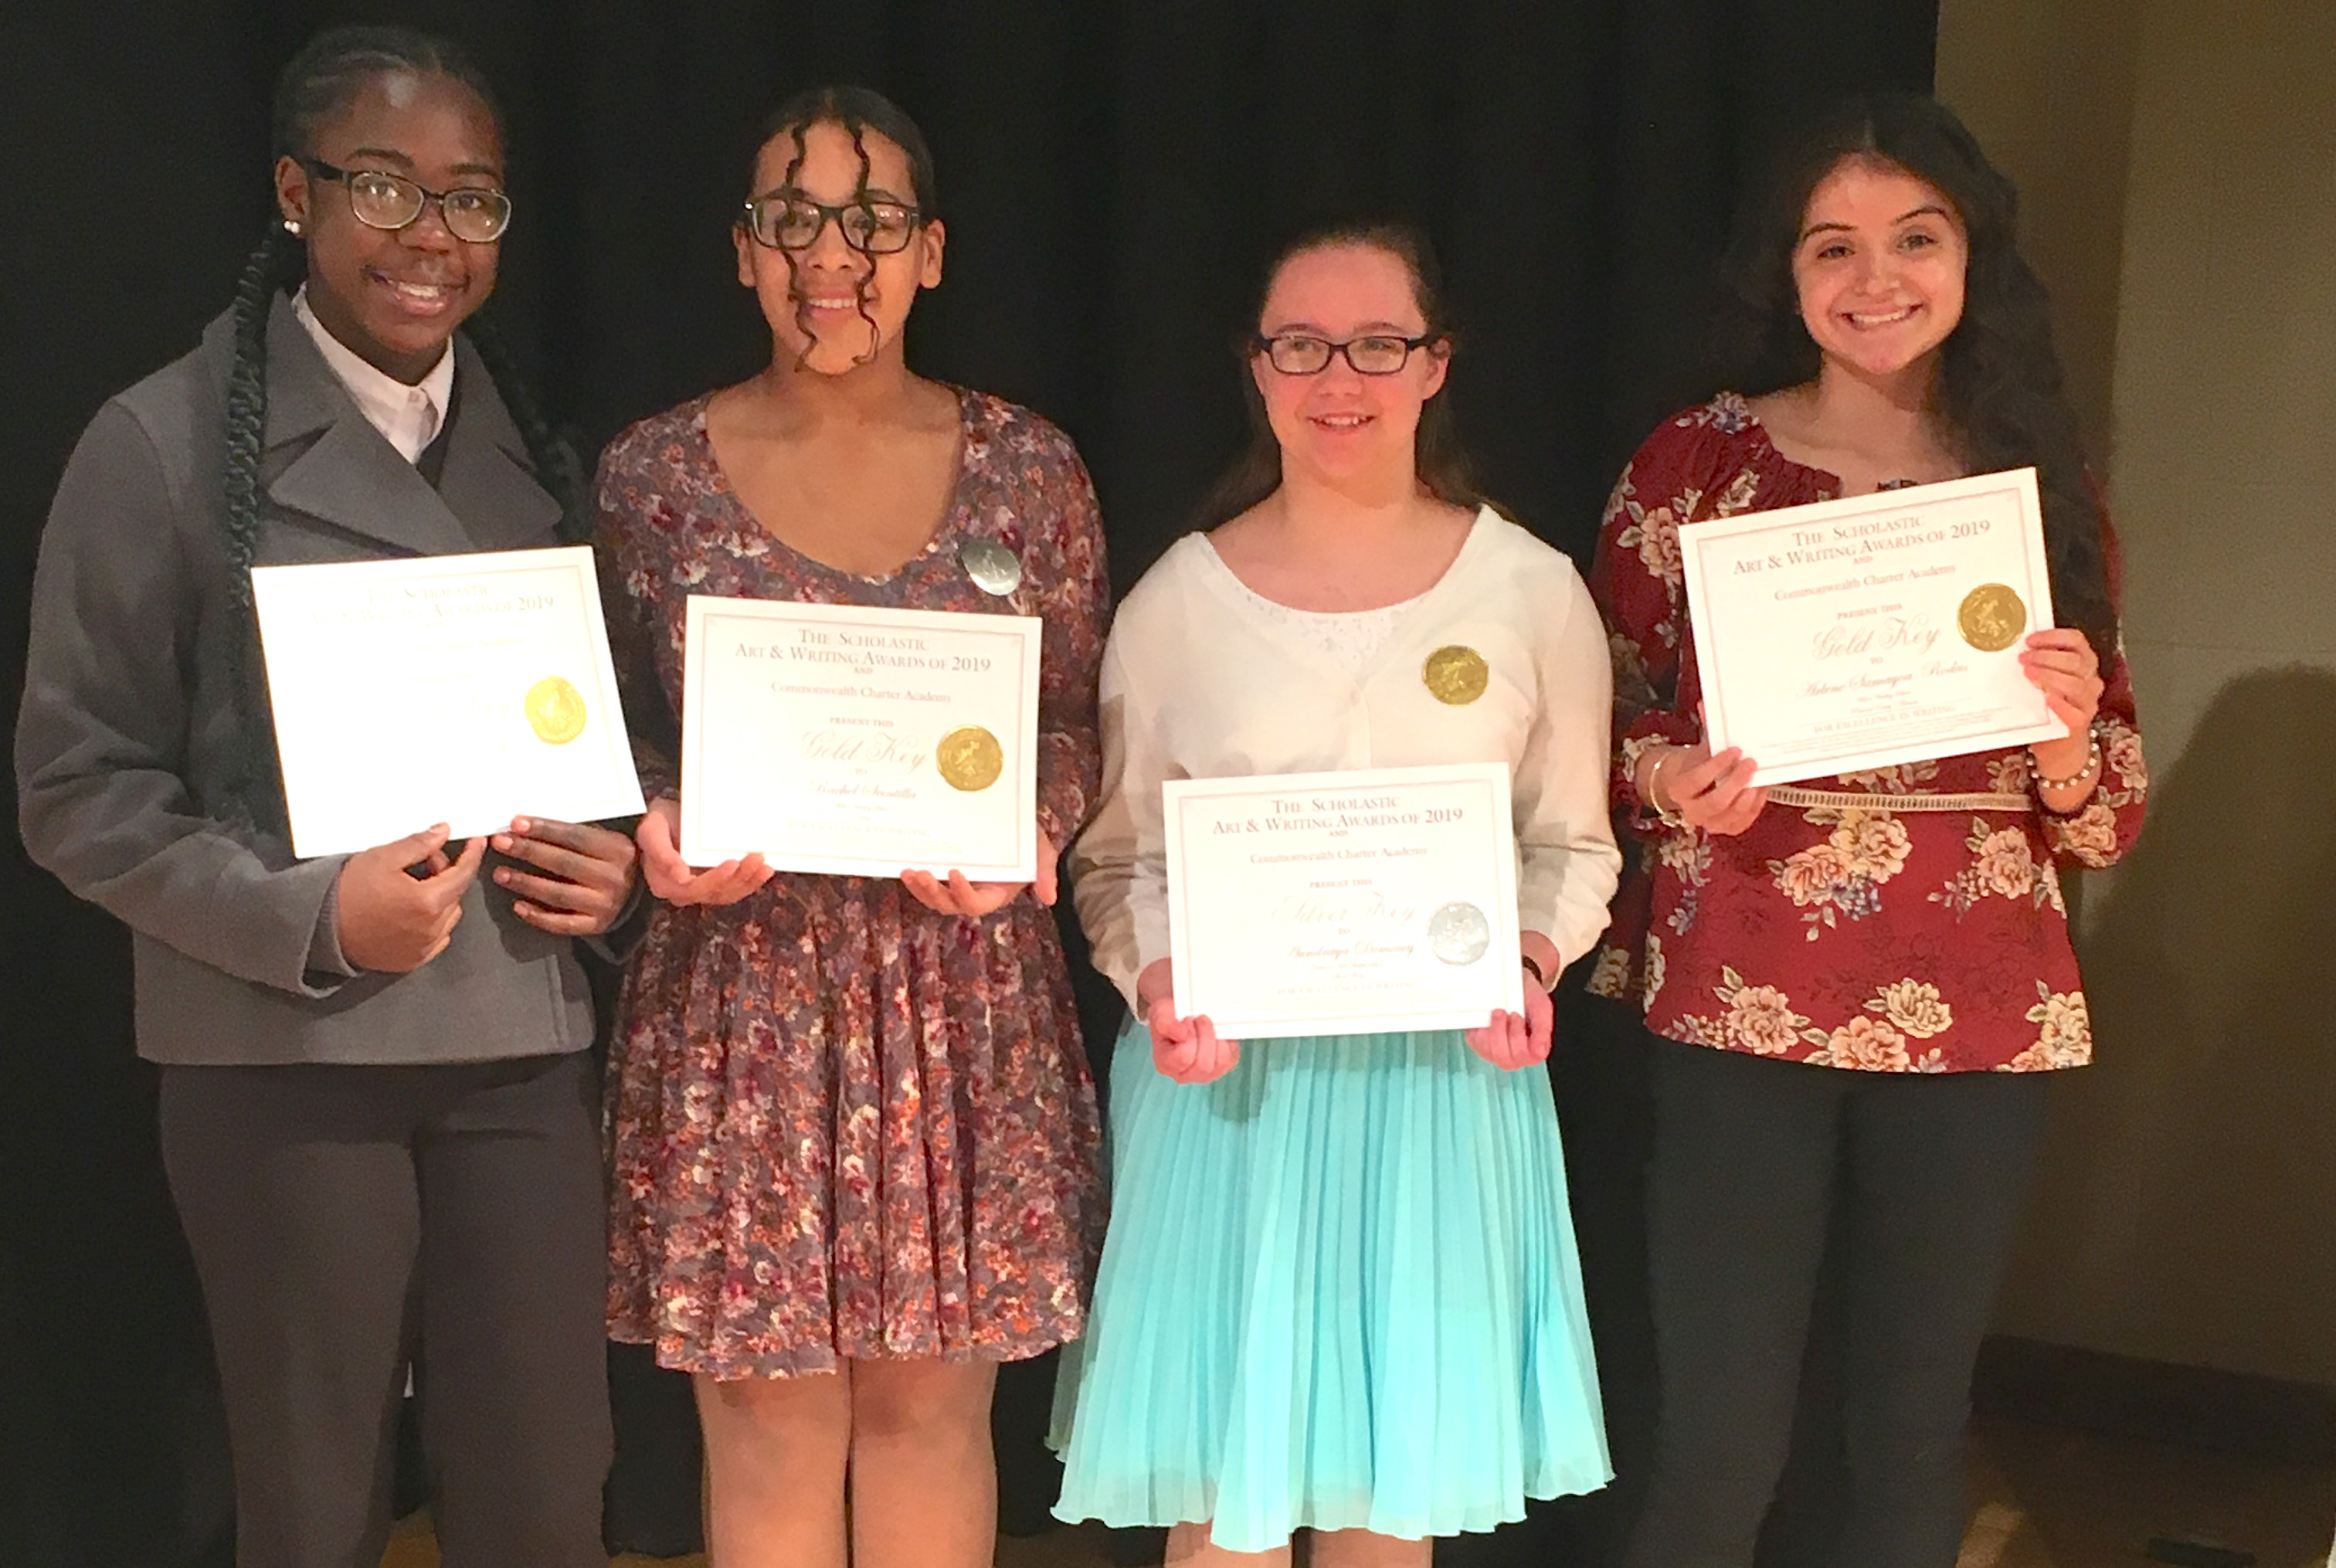 MHS students at Scholastic Art and Writing Awards